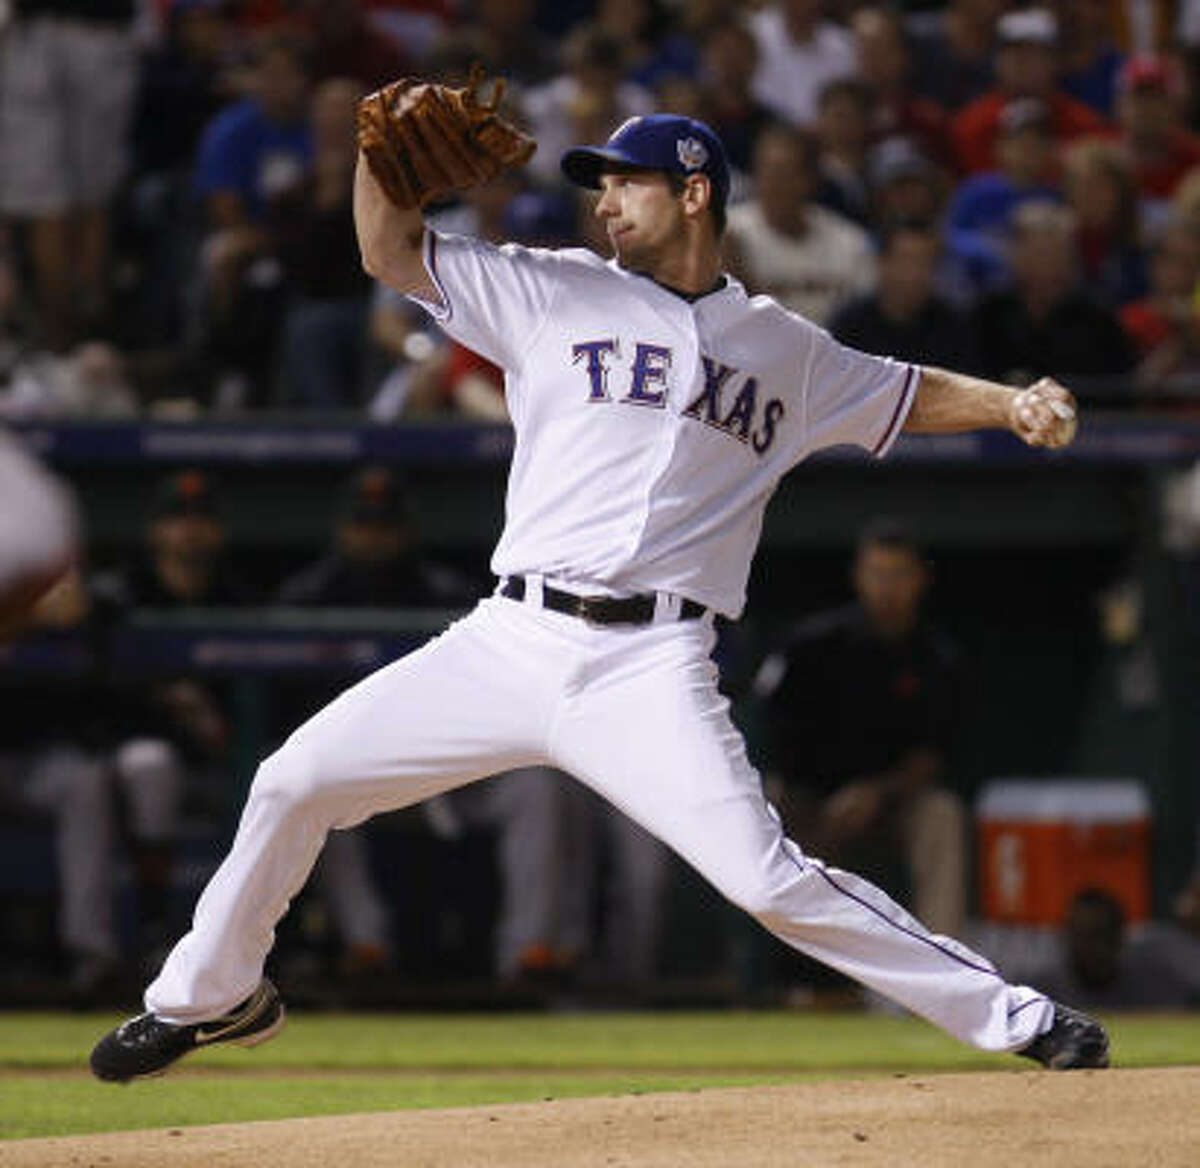 The Astros would like to follow the payroll example of the Rangers, who were able to develop enough young talent that when they were in contention they had the ability to add a high-priced veteran like Cliff Lee. Now the Rangers face the challenge of keeping the free-agent pitcher at an even higher price and hoping his contract doesn't take up too much of their payroll.